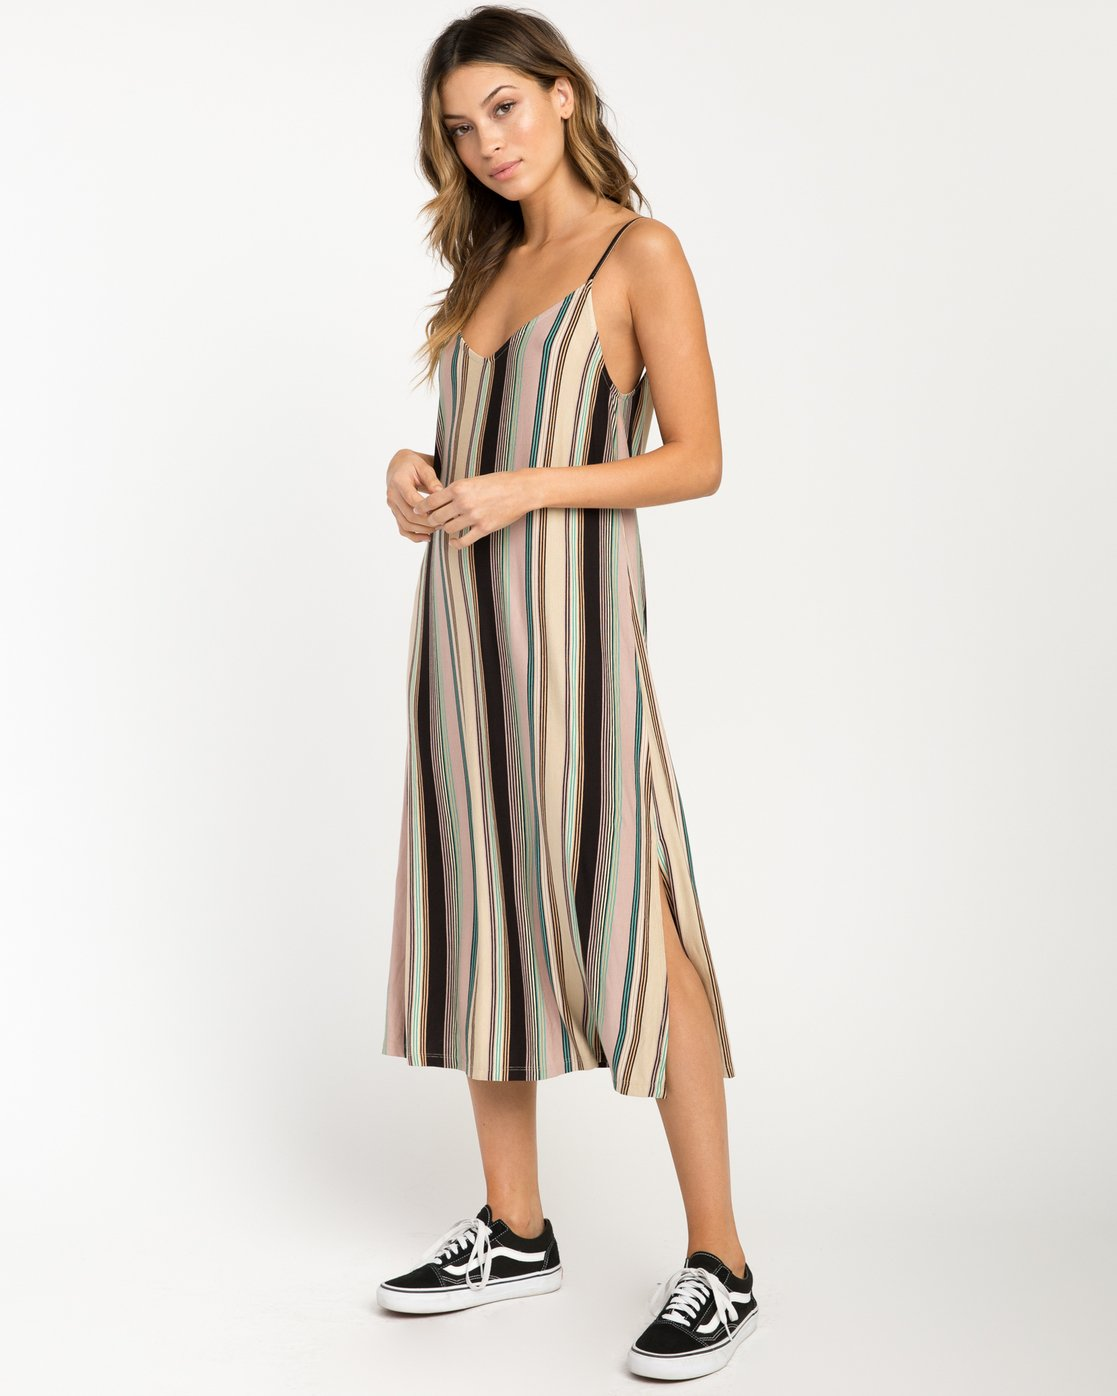 0 Jasmine Striped Midi Dress Beige WD08PRJA RVCA